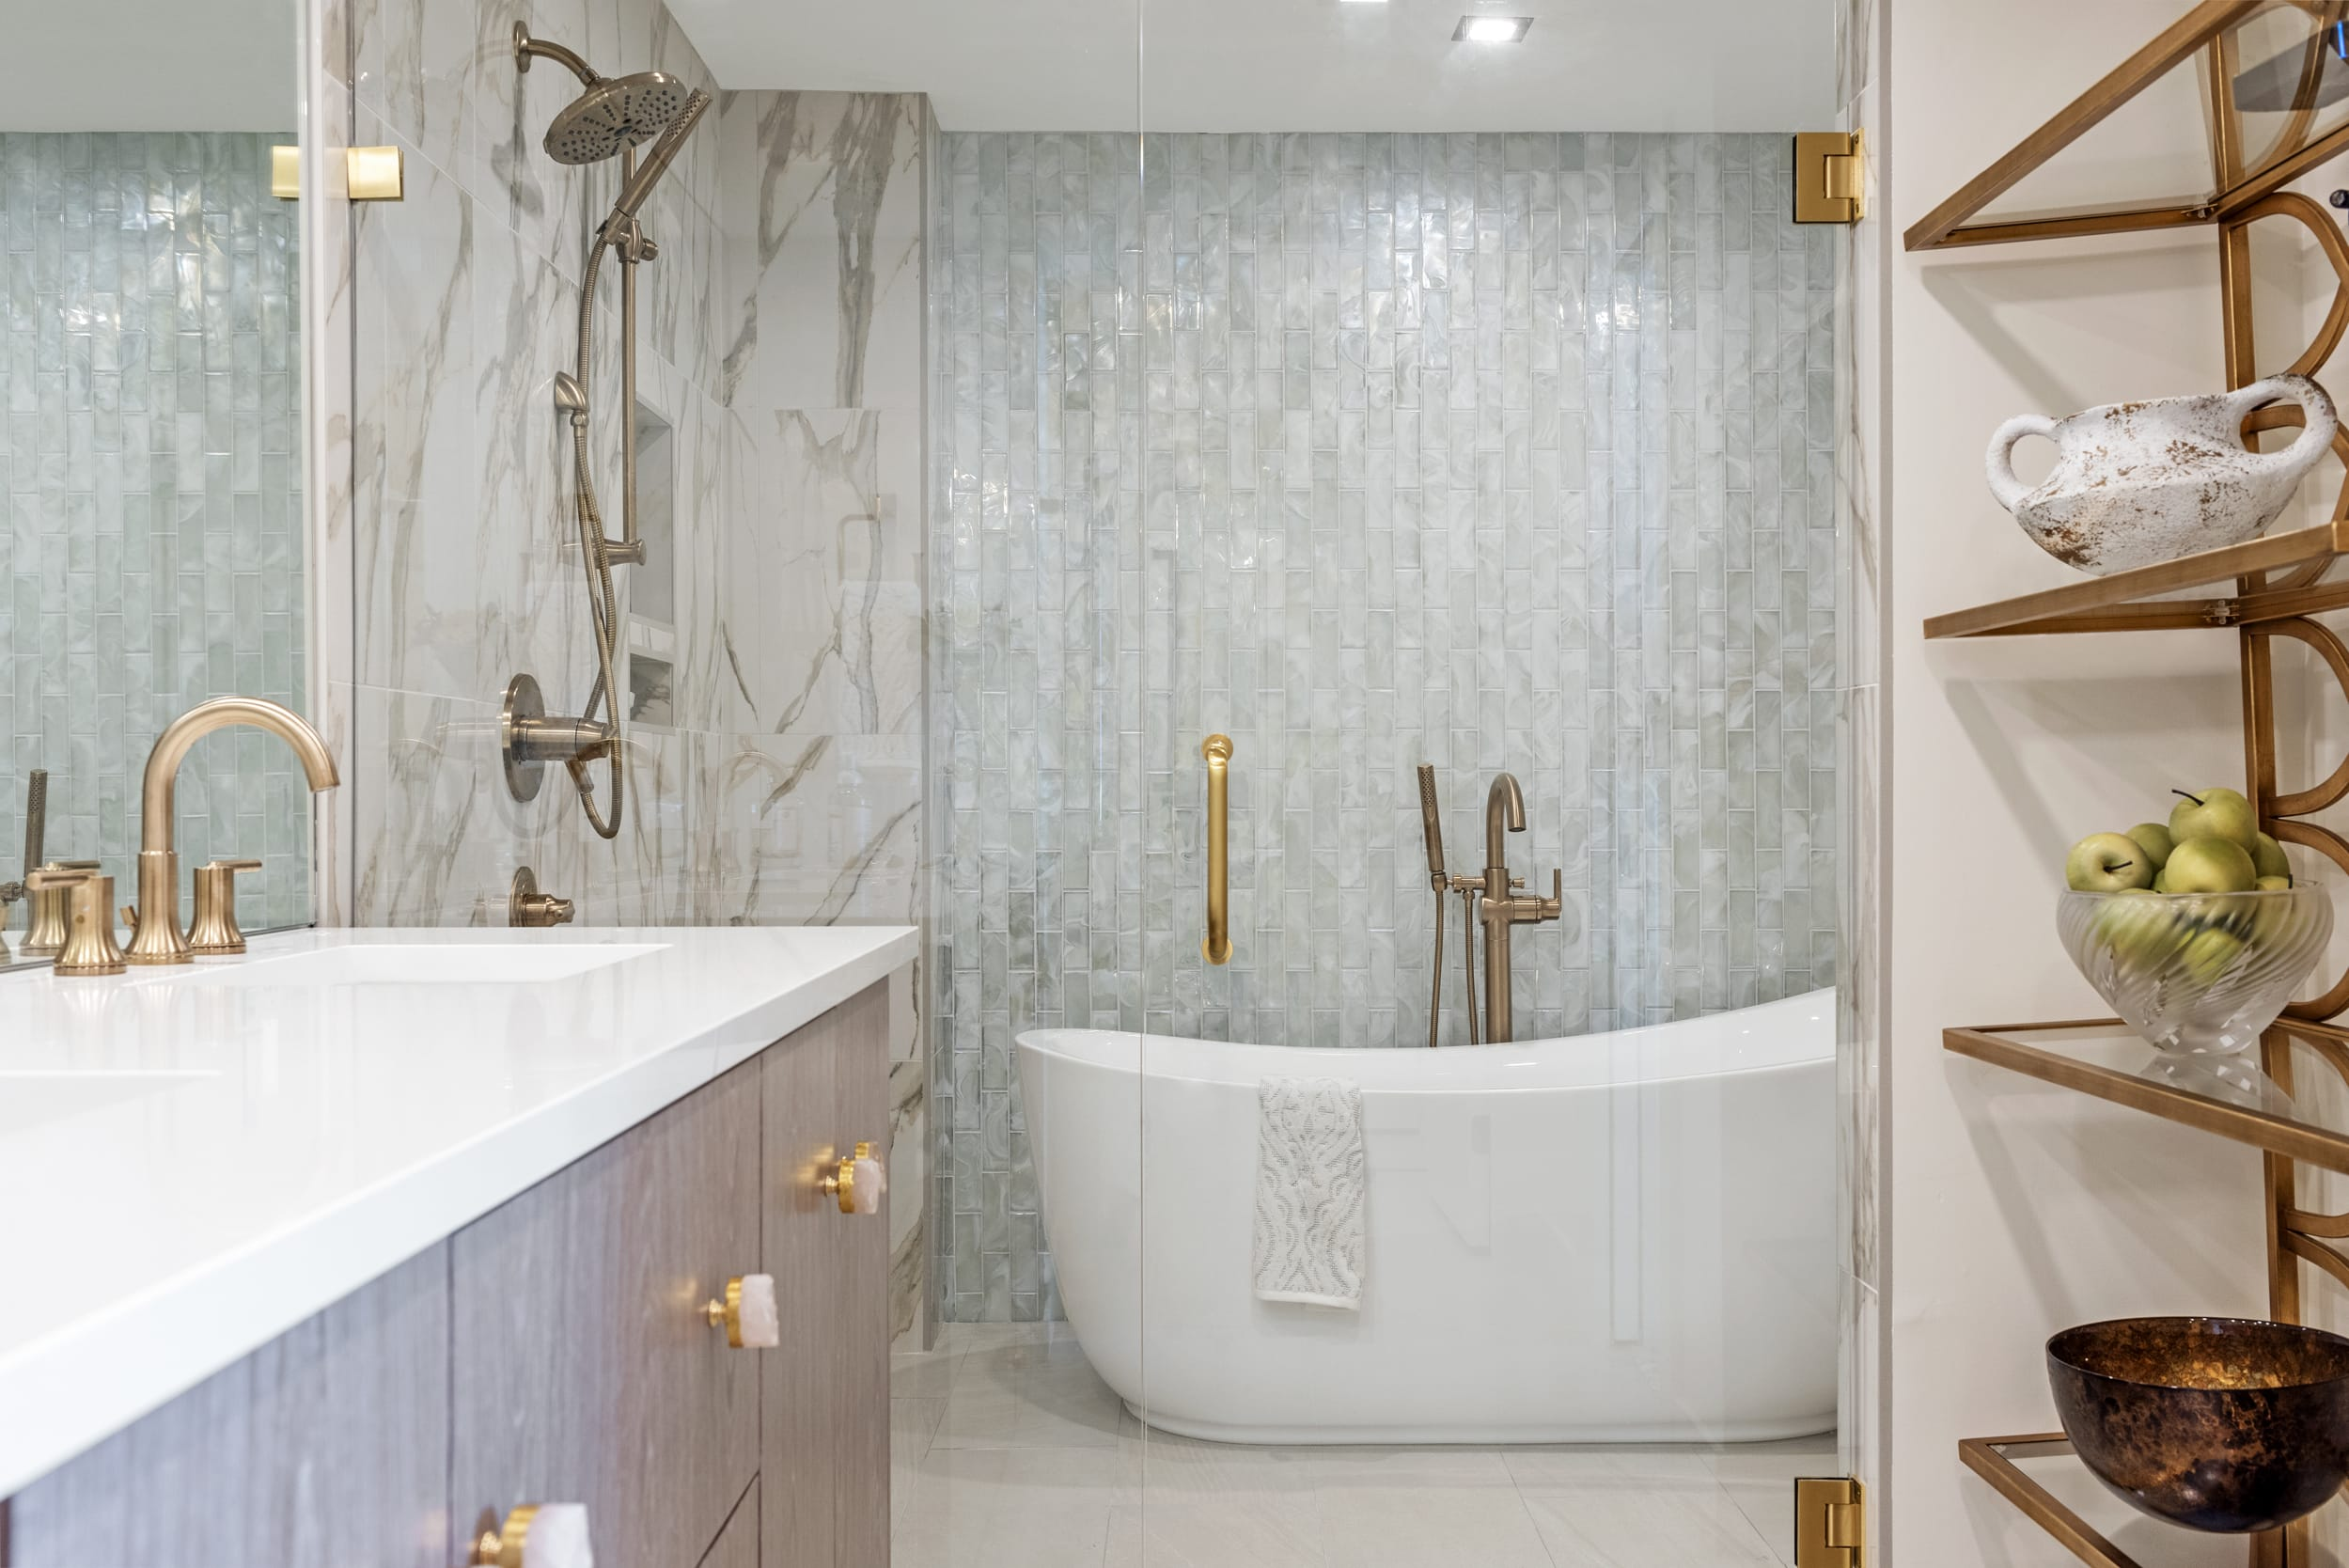 Shower Steam Room Bath Gold Faucets Marble Shell Reflective Tile